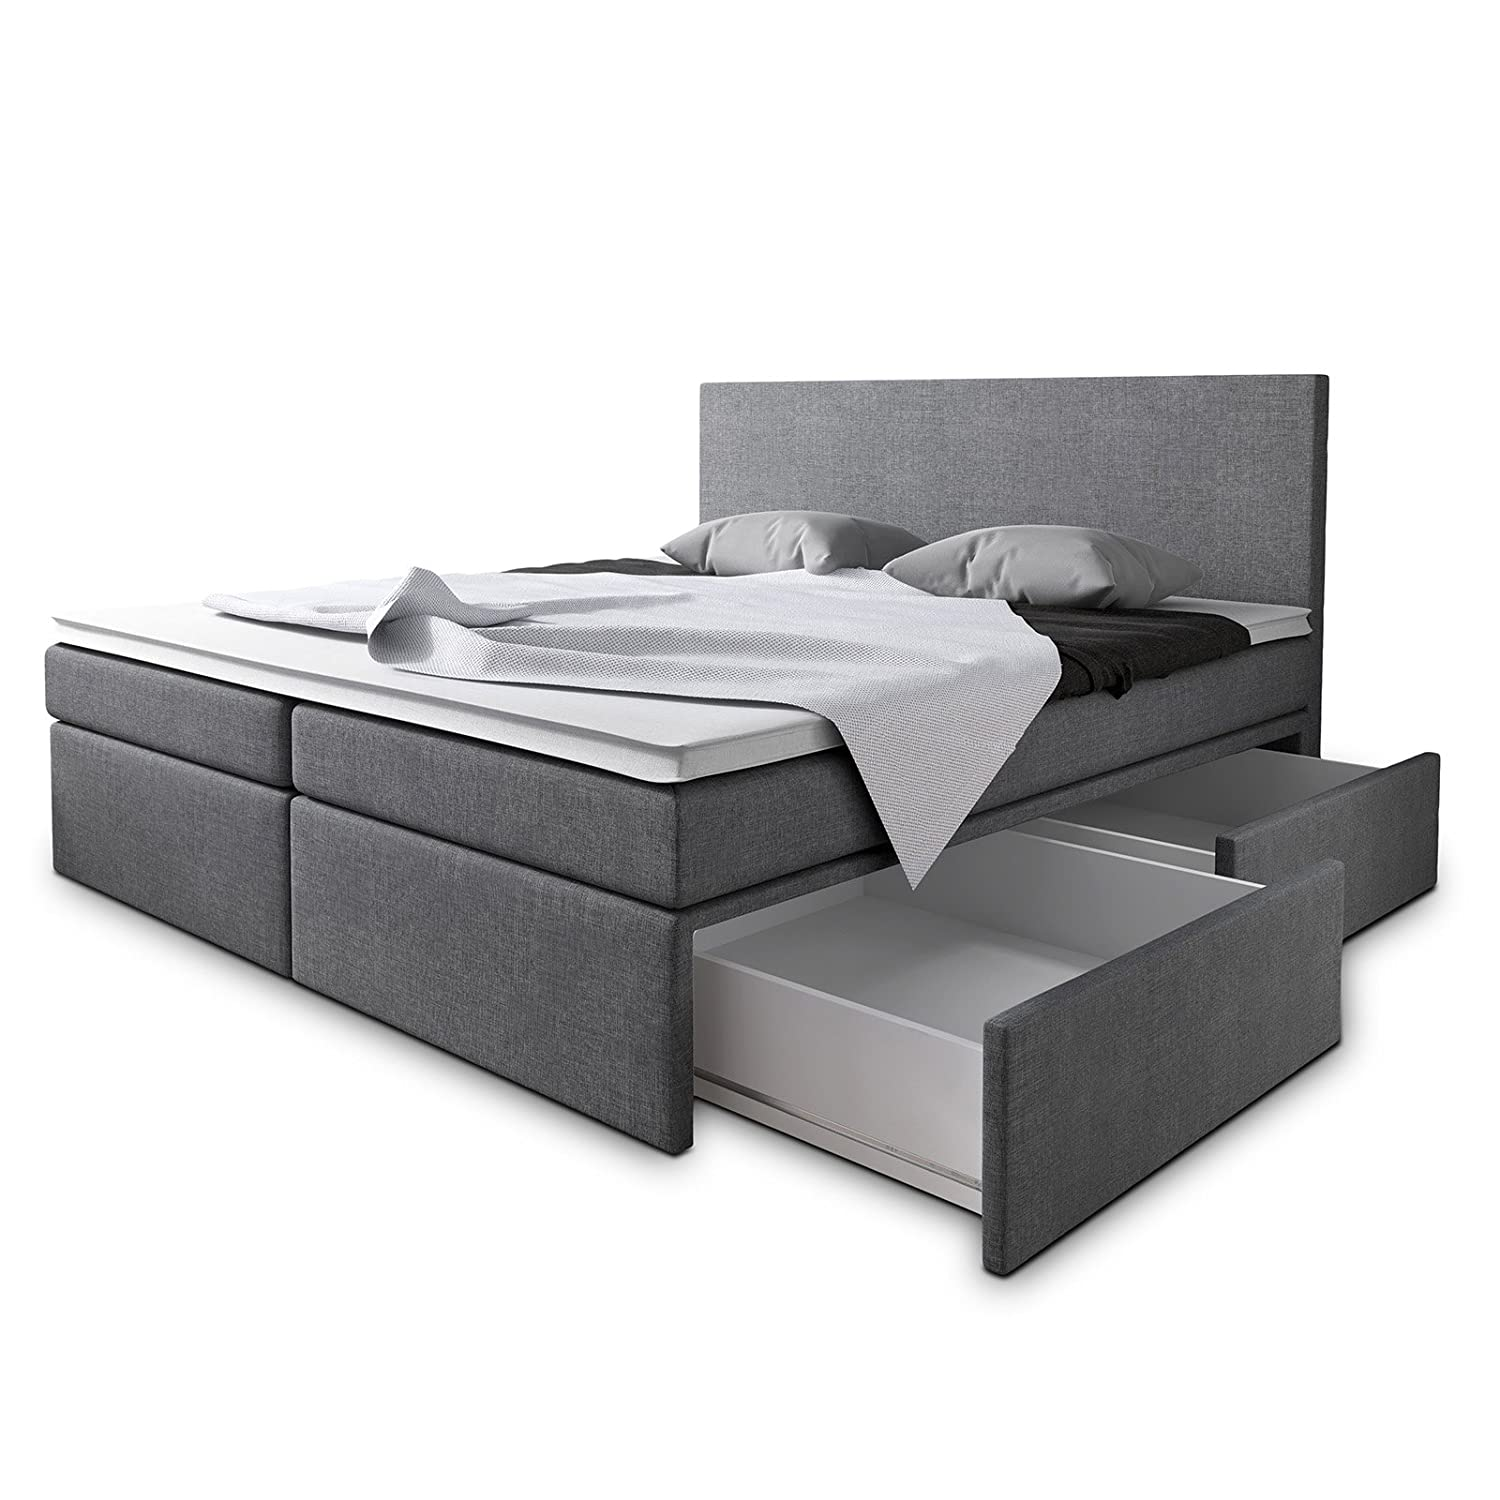 boxspringbett 140 200 mit stauraum. Black Bedroom Furniture Sets. Home Design Ideas